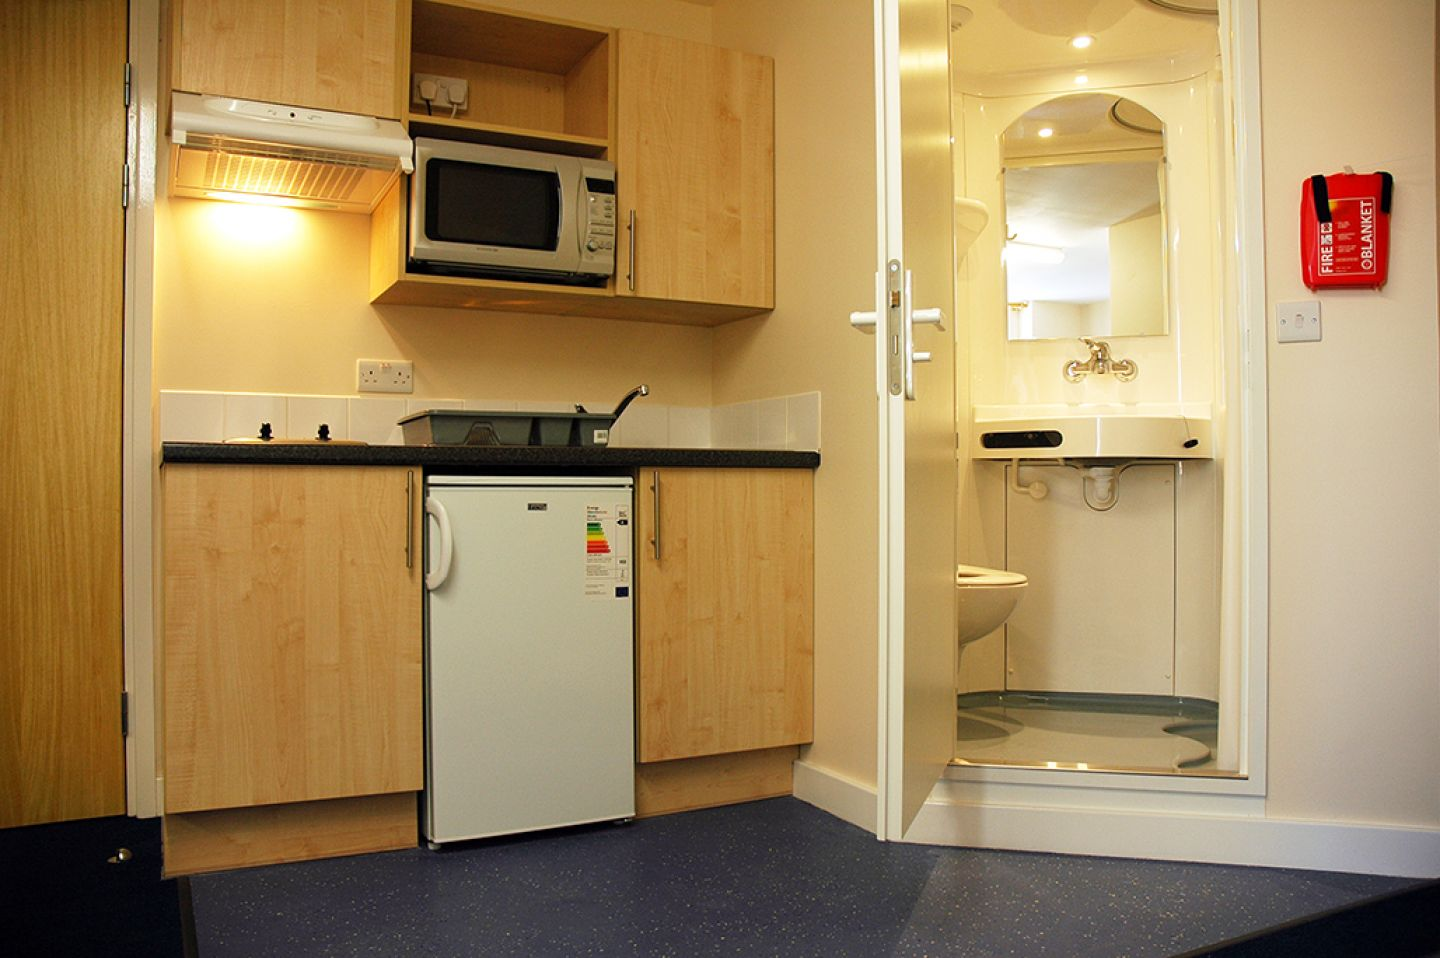 View of a studio room showing kitchen and en-suite. The kitchen is on one wall with hob and extractor fan on the left, fridge central with microwave overhead and sink on the right, plus three cupboards. The small bathroom is built in, with a door with a latch and a small step up to enter.